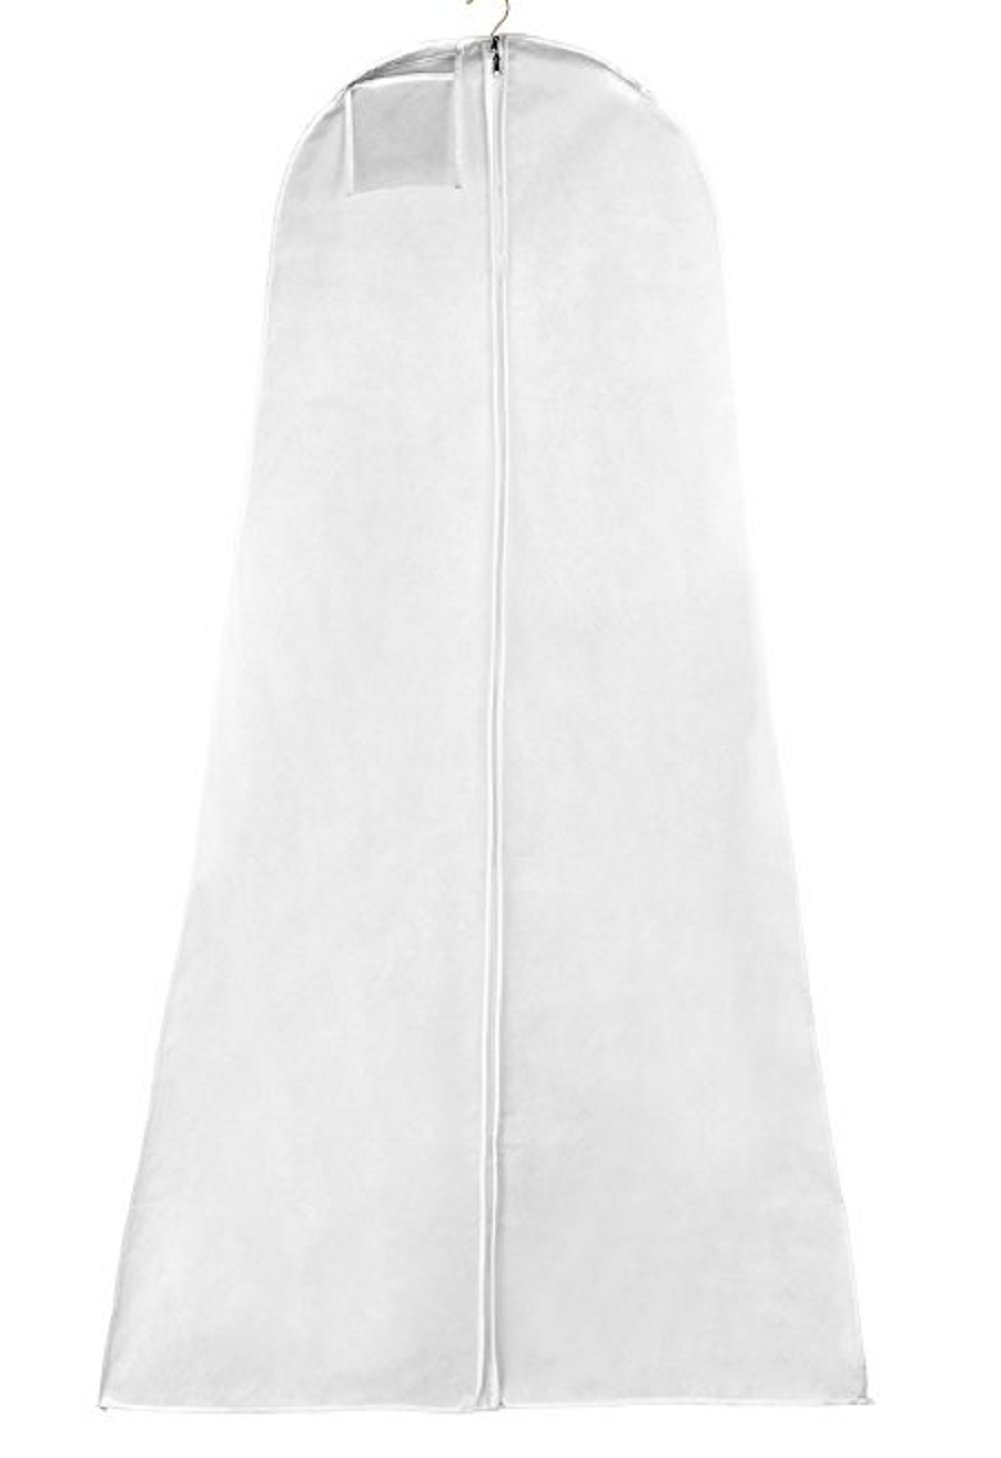 XLg Wht Breathable Wedding Bridal Gown Bag for Travel and Storage//Garment Bag 36x72x24gusset